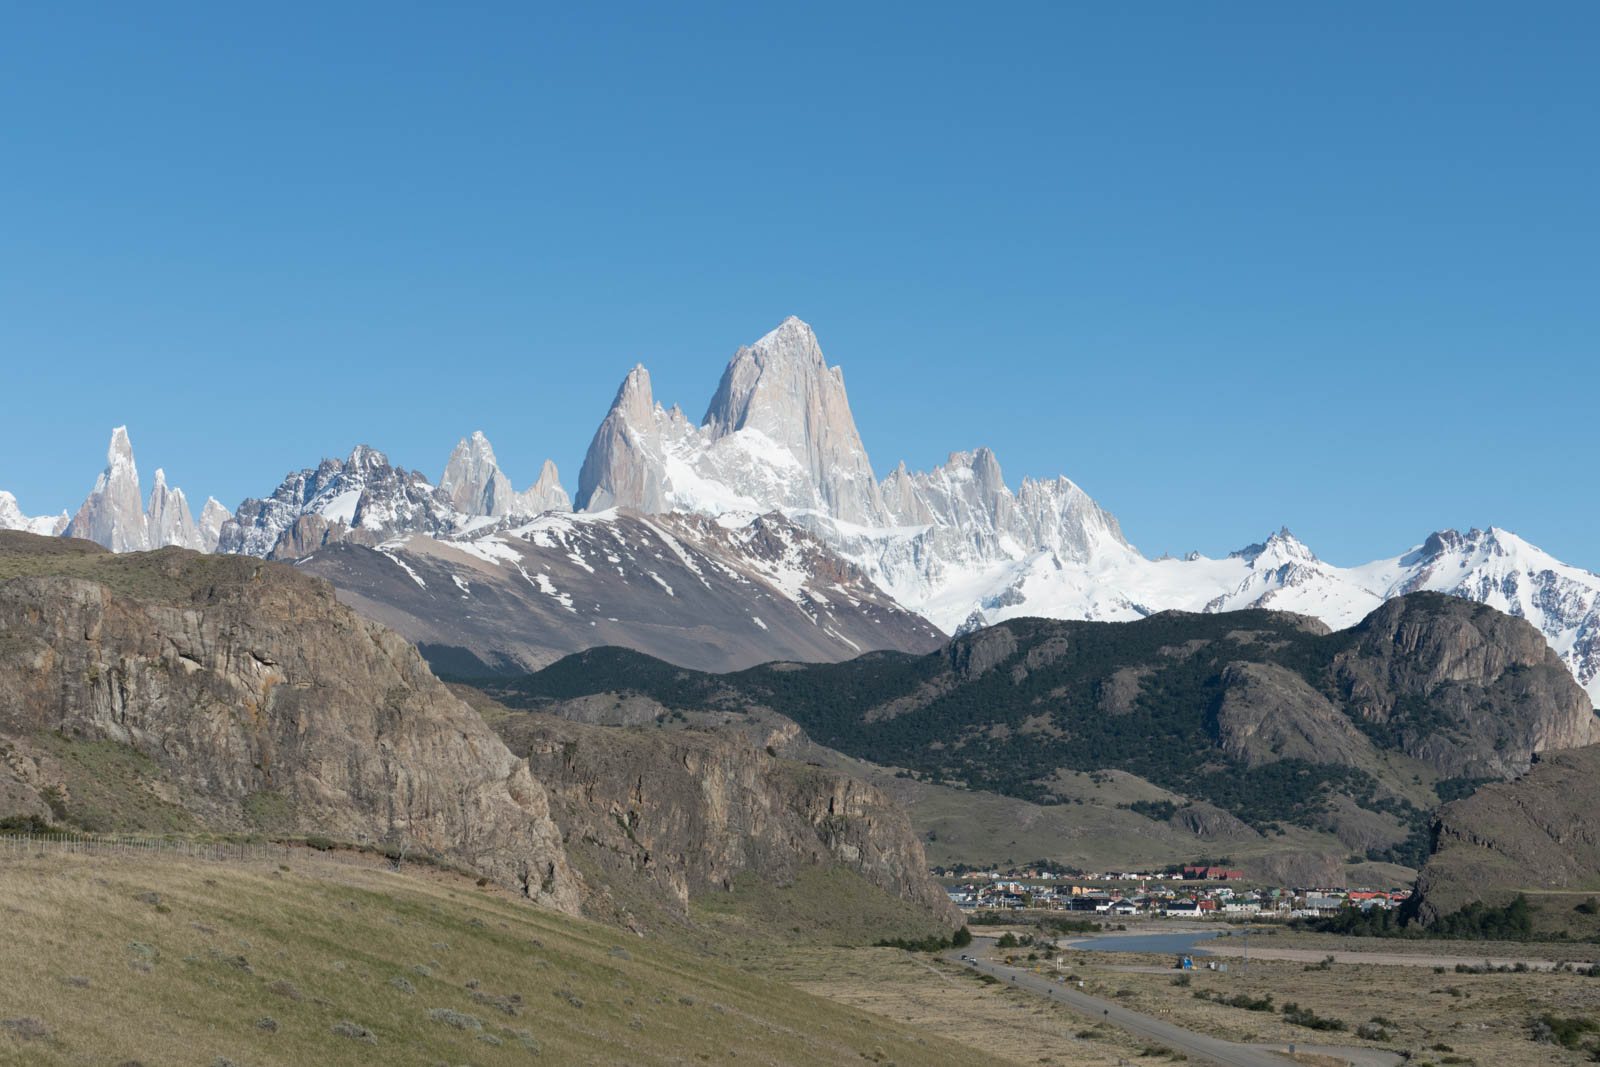 FitzRoy and the town El Chalten